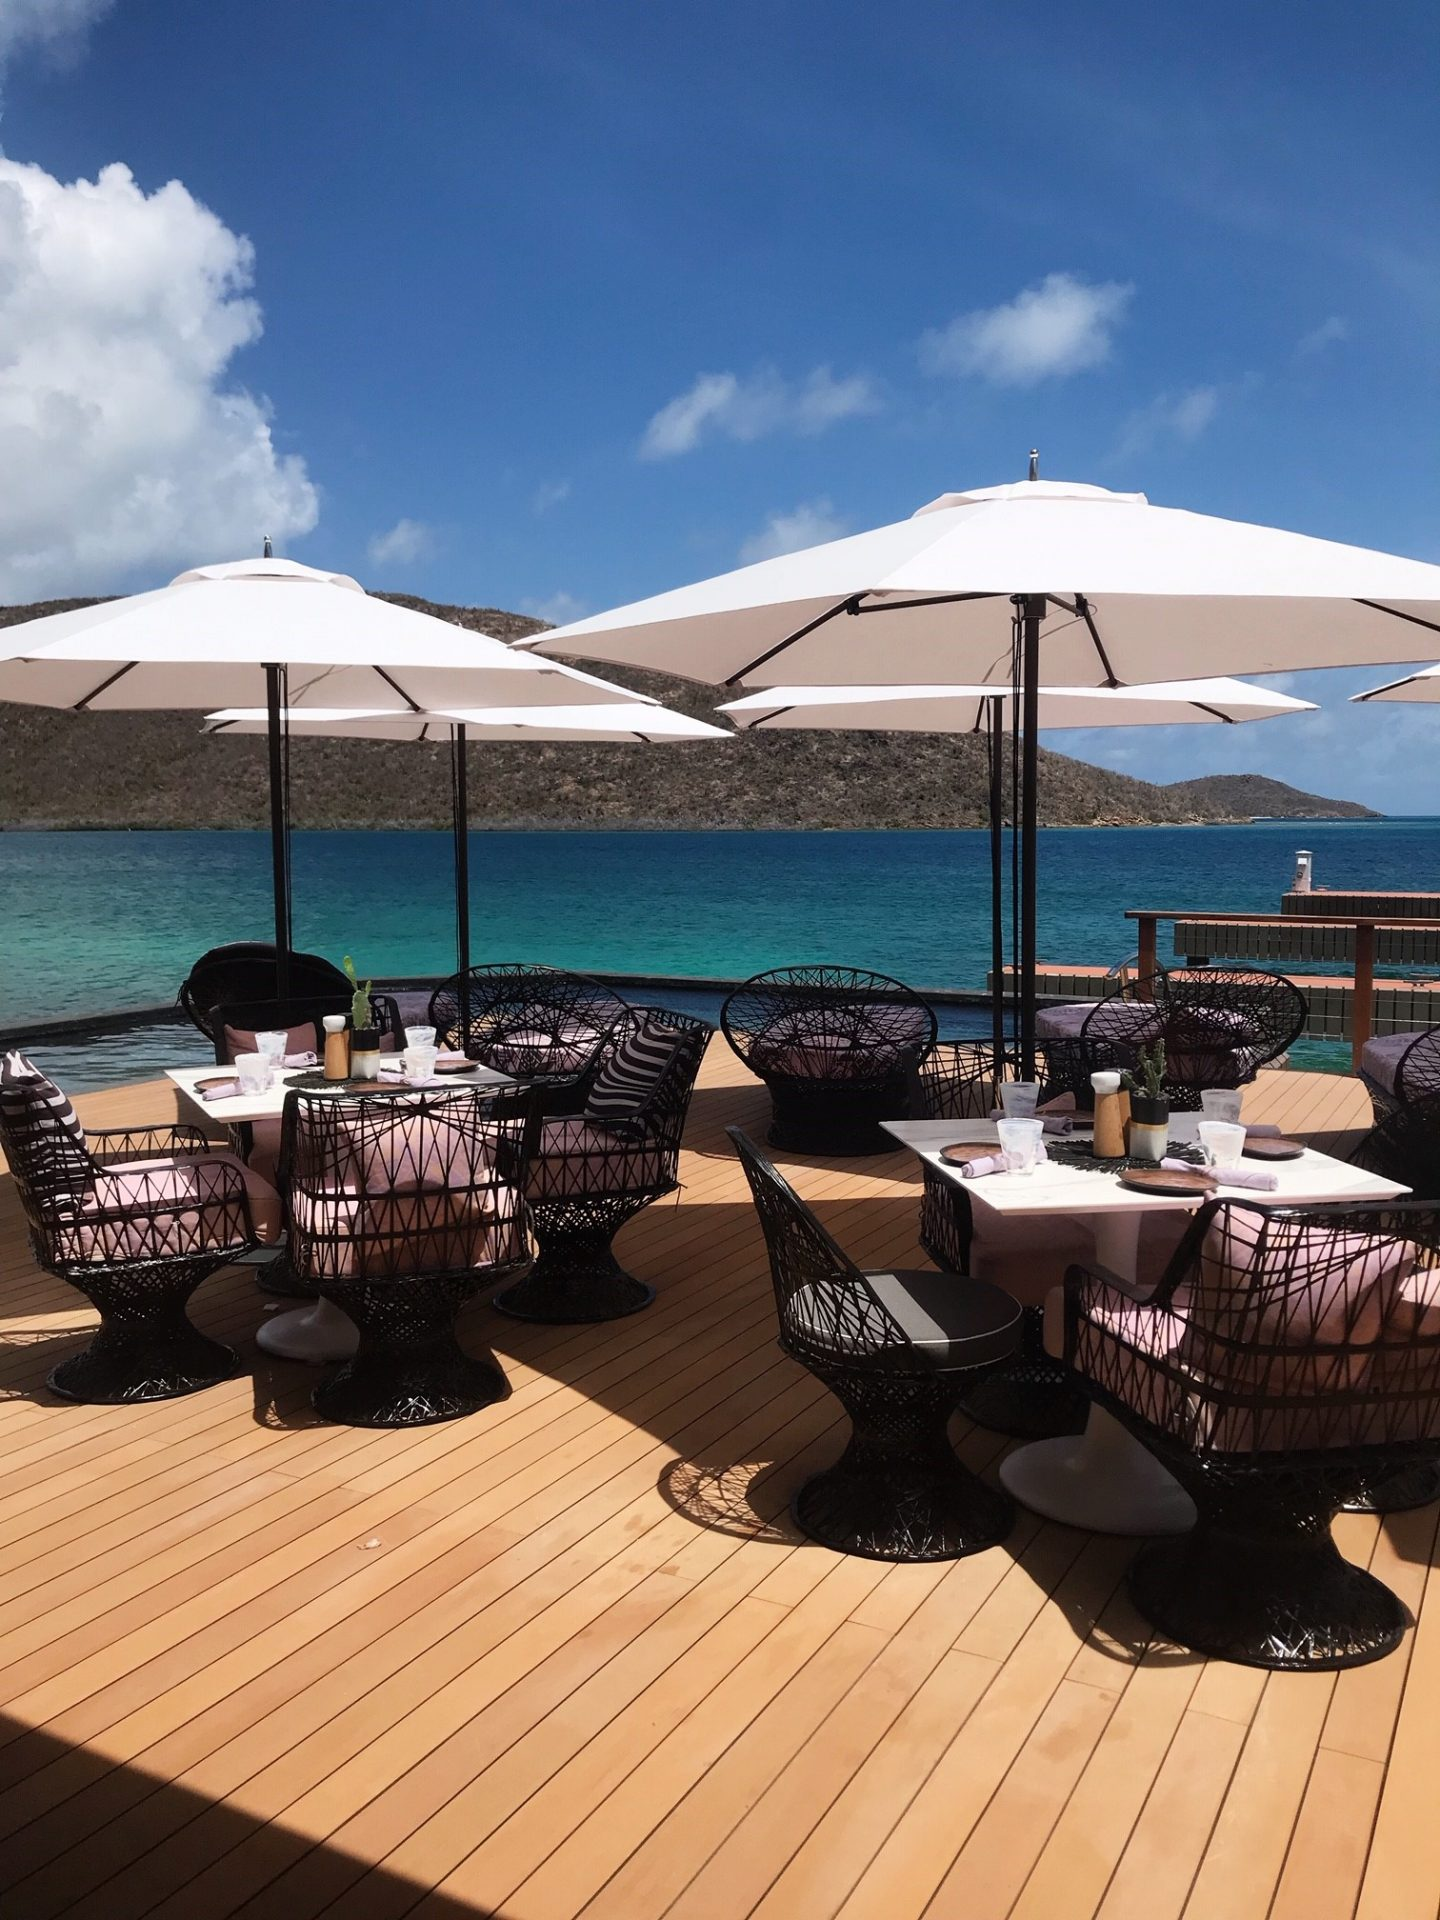 Sea Views from Nova Restaurant, Oil Nut Bay in the British Virgin Islands